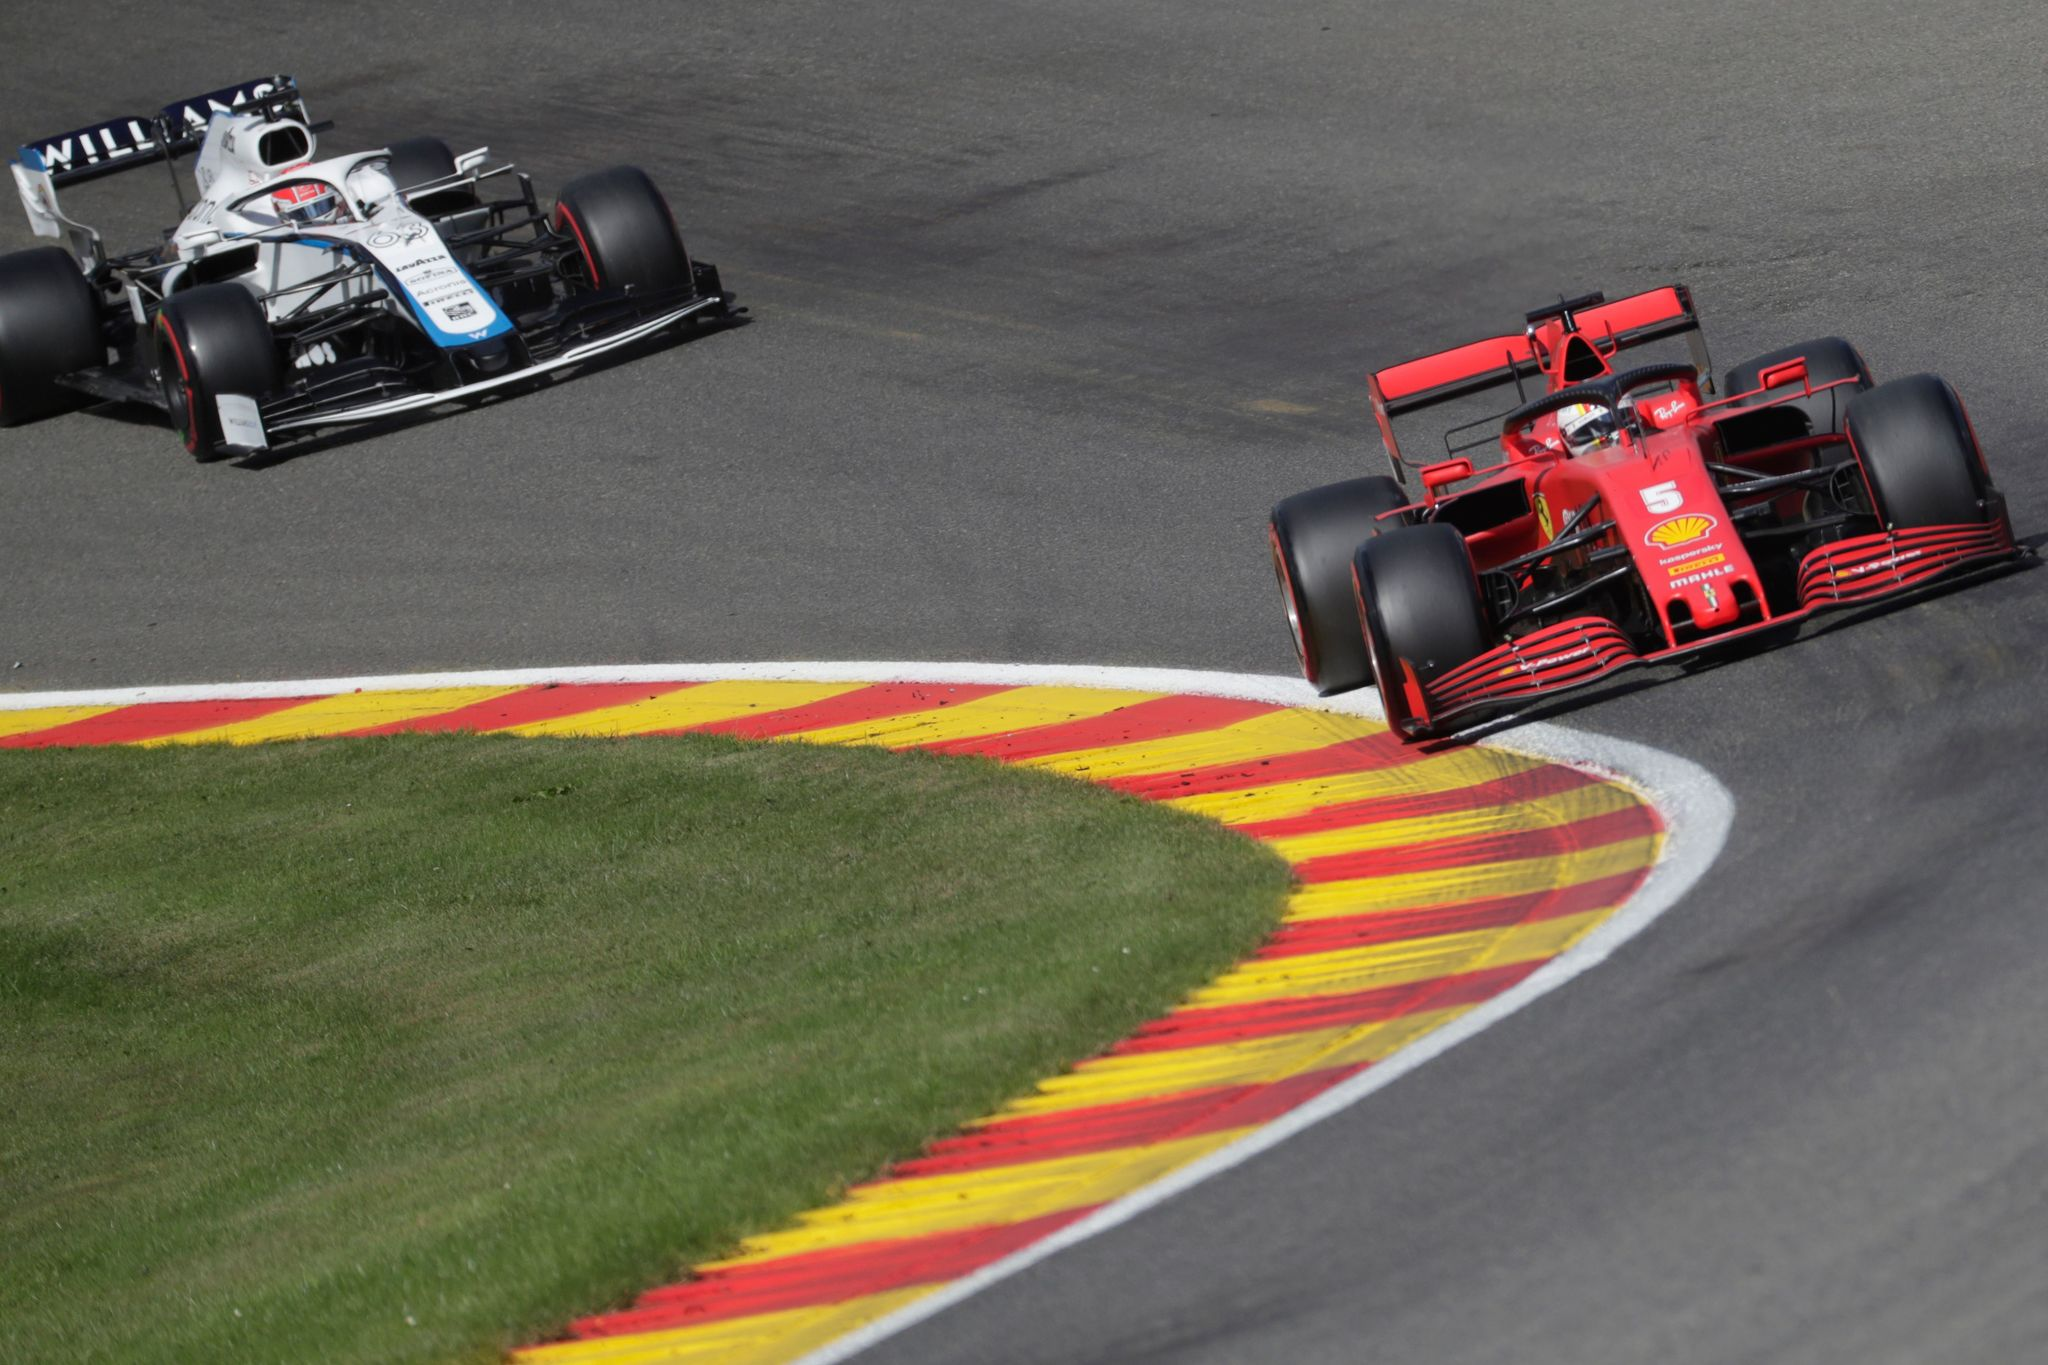 Ferraris German driver Sebastian lt;HIT gt;Vettel lt;/HIT gt; (R) drives during the third practice session at the Spa-Francorchamps circuit in Spa on August 29, 2020 ahead of the Belgian Formula One Grand Prix. (Photo by Stephanie Lecocq / POOL / AFP)